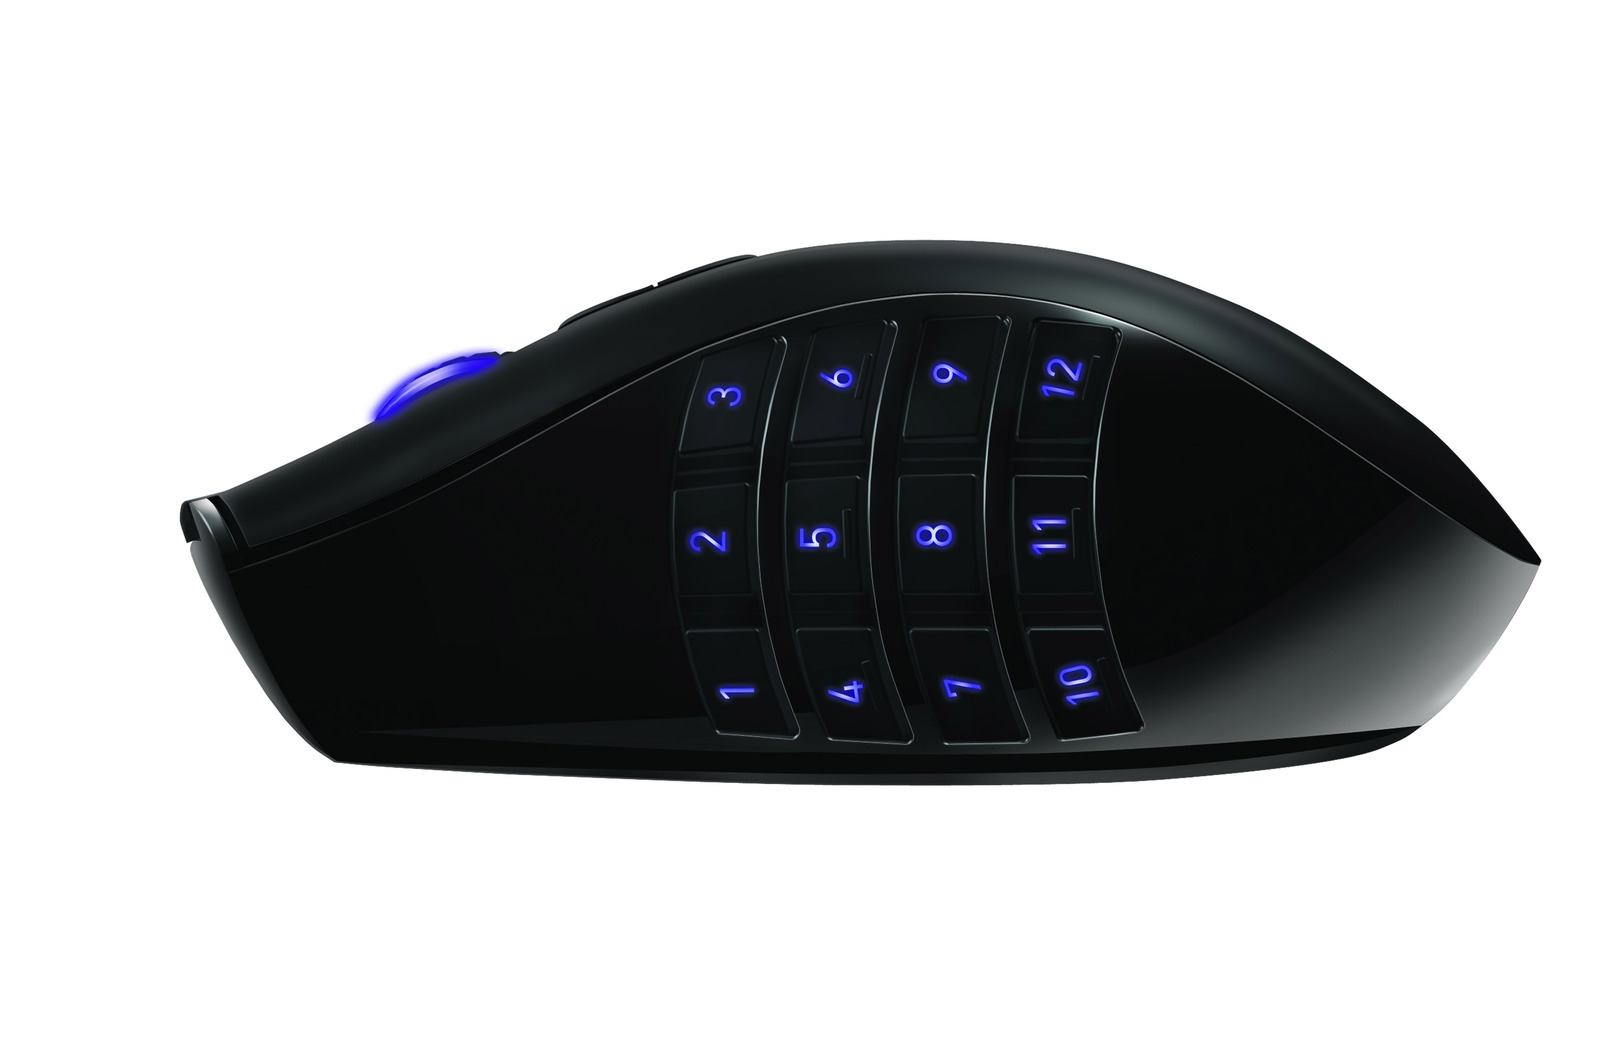 Razer Naga Epic Mmo Gaming Mouse Buy Now At Mighty Ape Nz Chroma Wired Wireless For Image